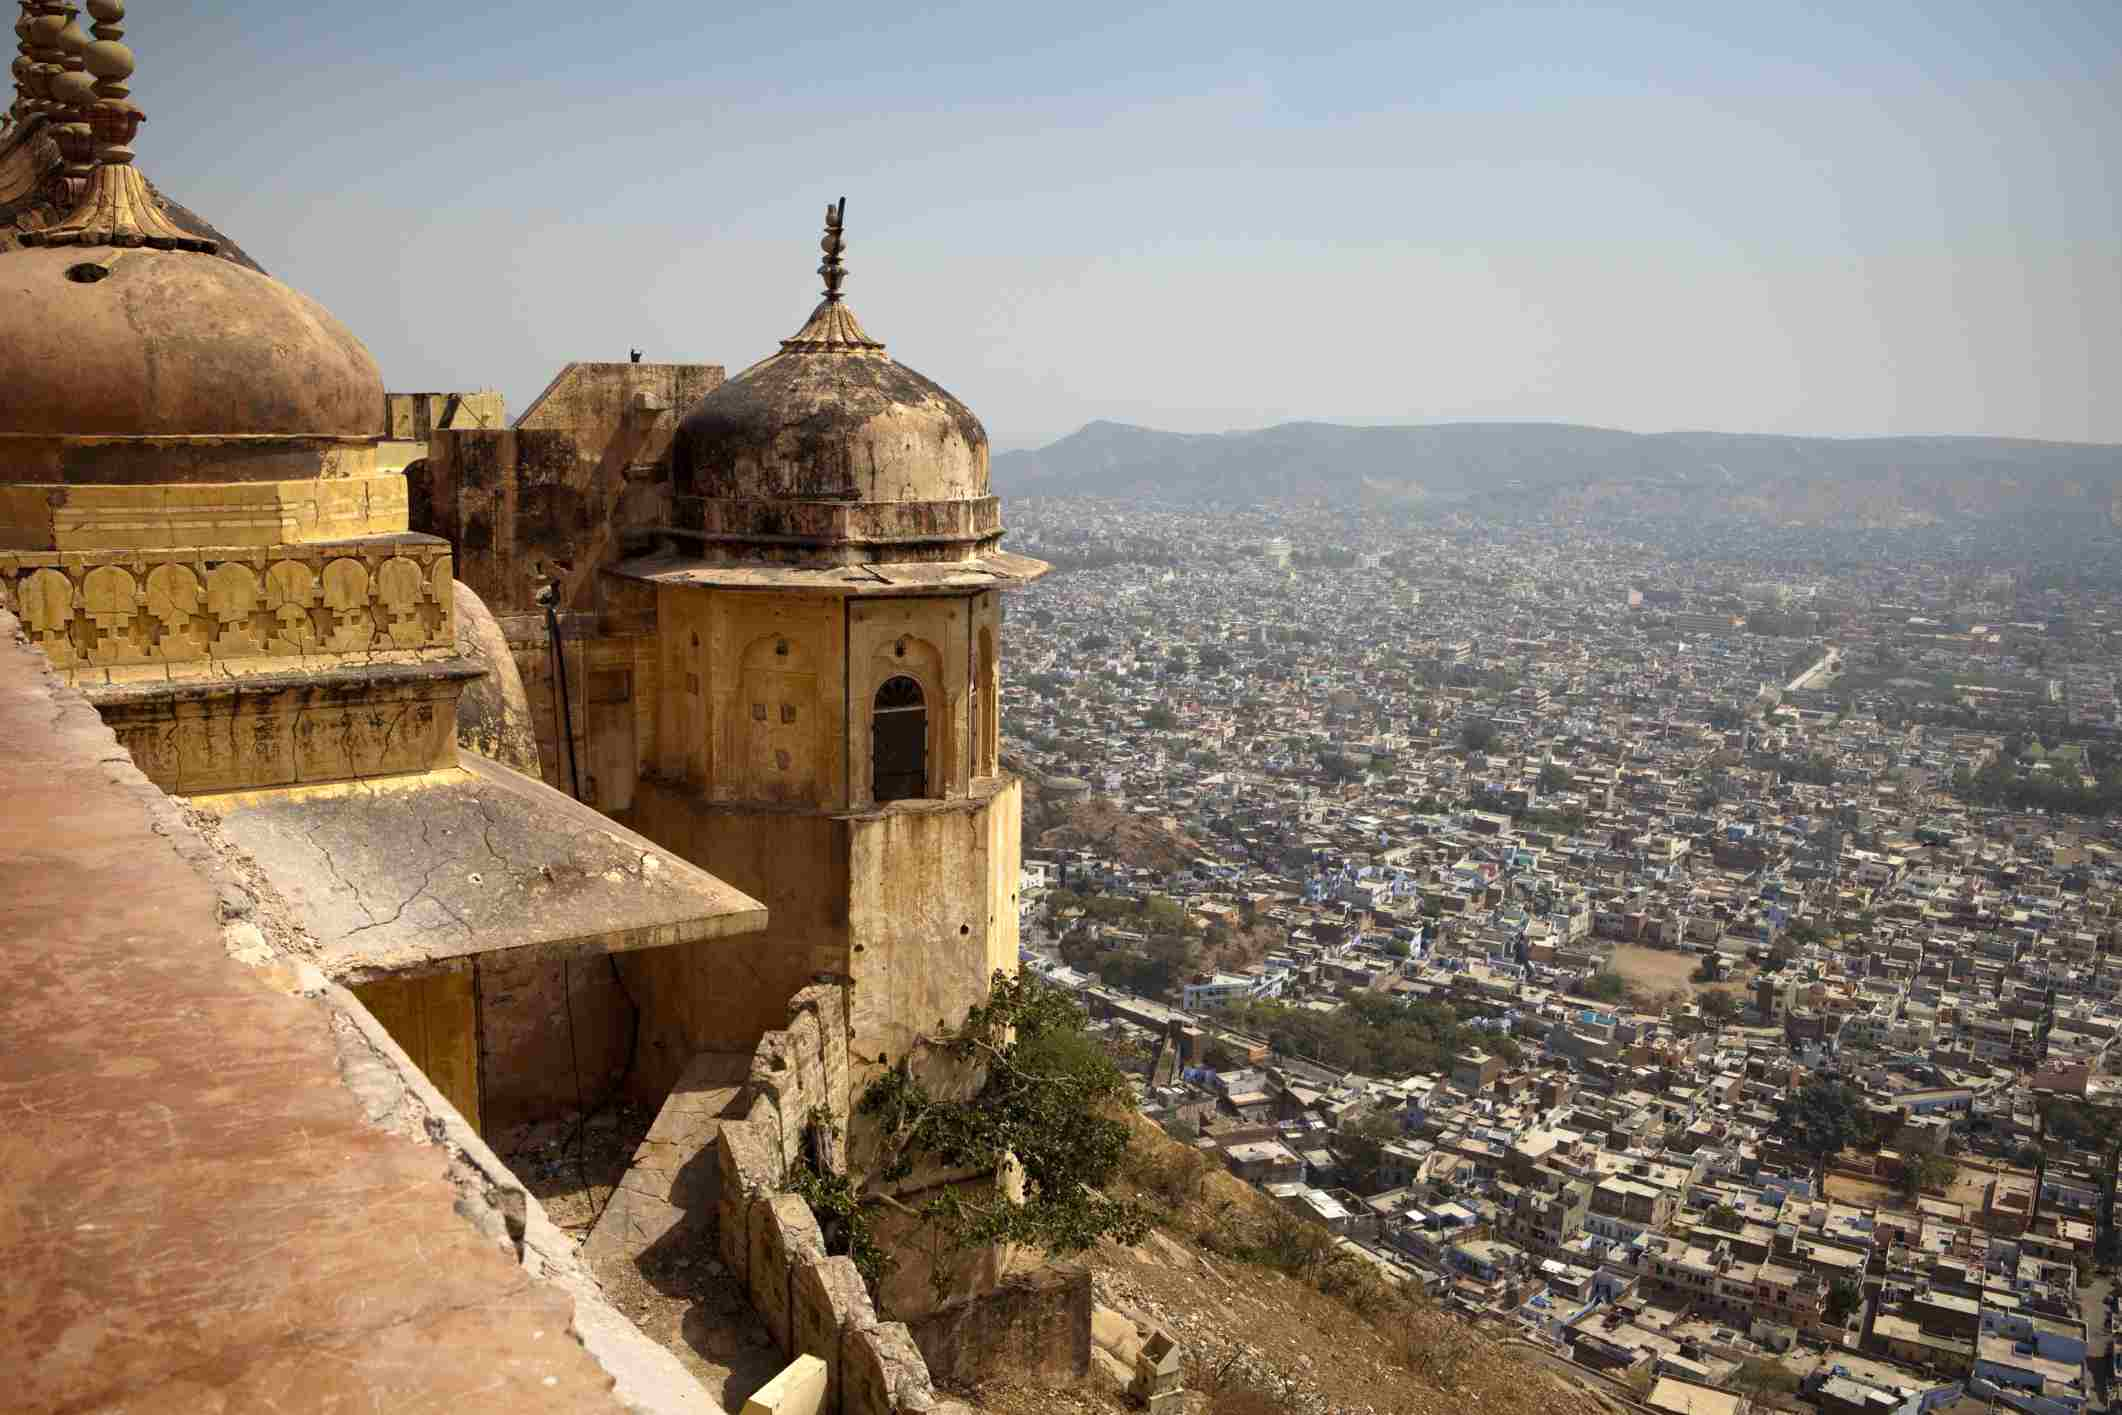 Views over Jaipur from Nahargarh Fort